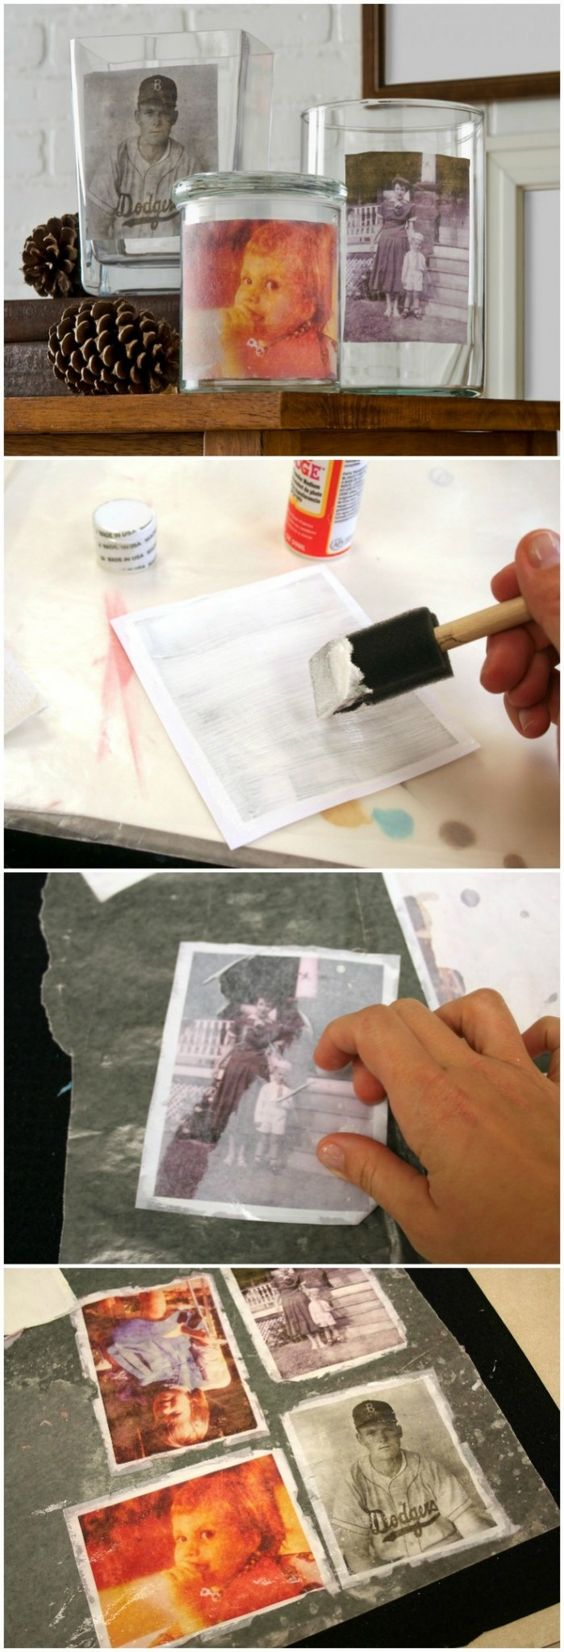 Vintage Mod Podge Photo Transfer To Vases.